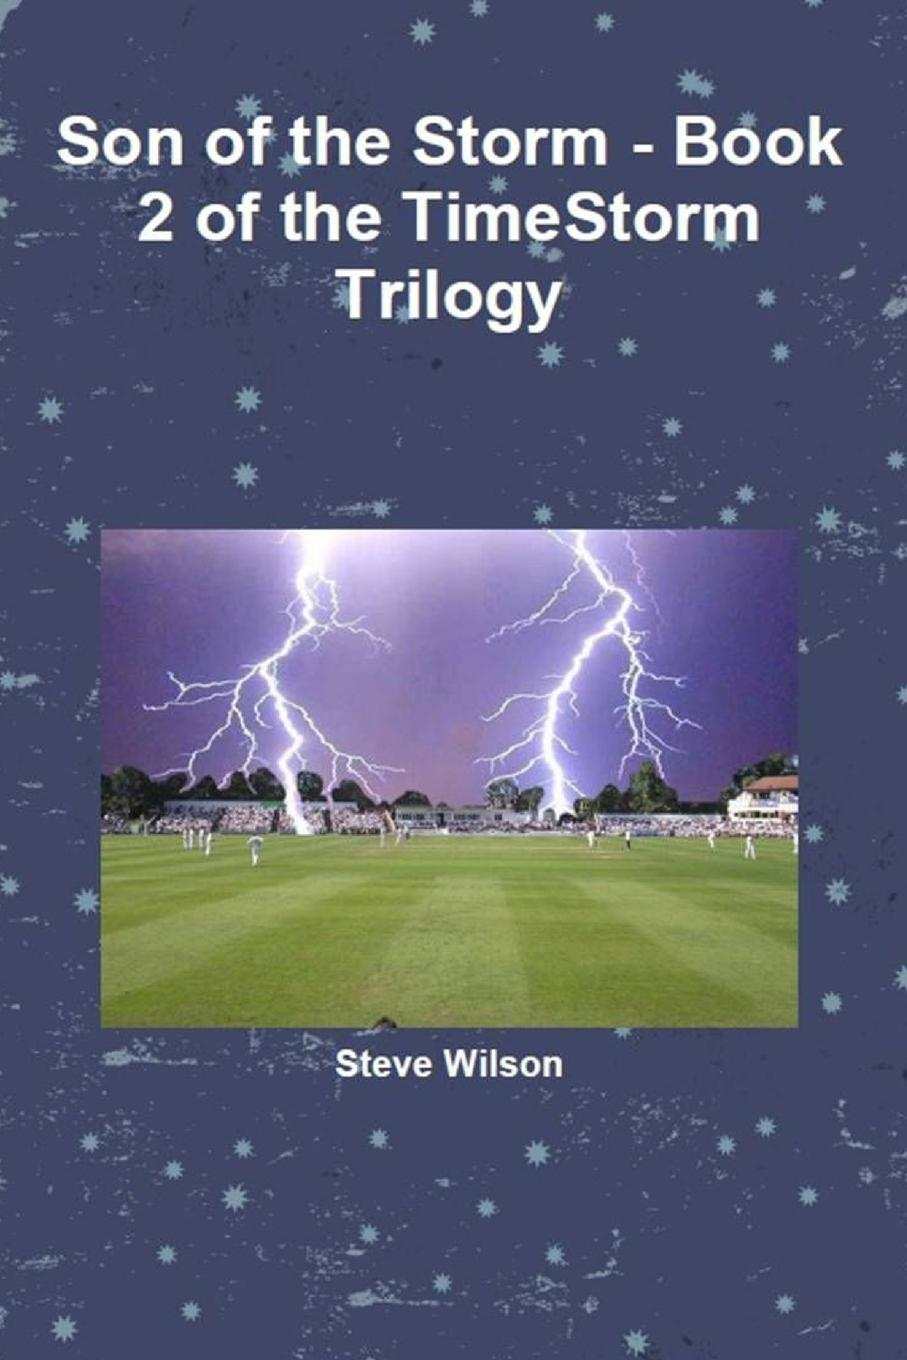 Steve Wilson Son of the Storm - The Timestorm Trilogy Book 2